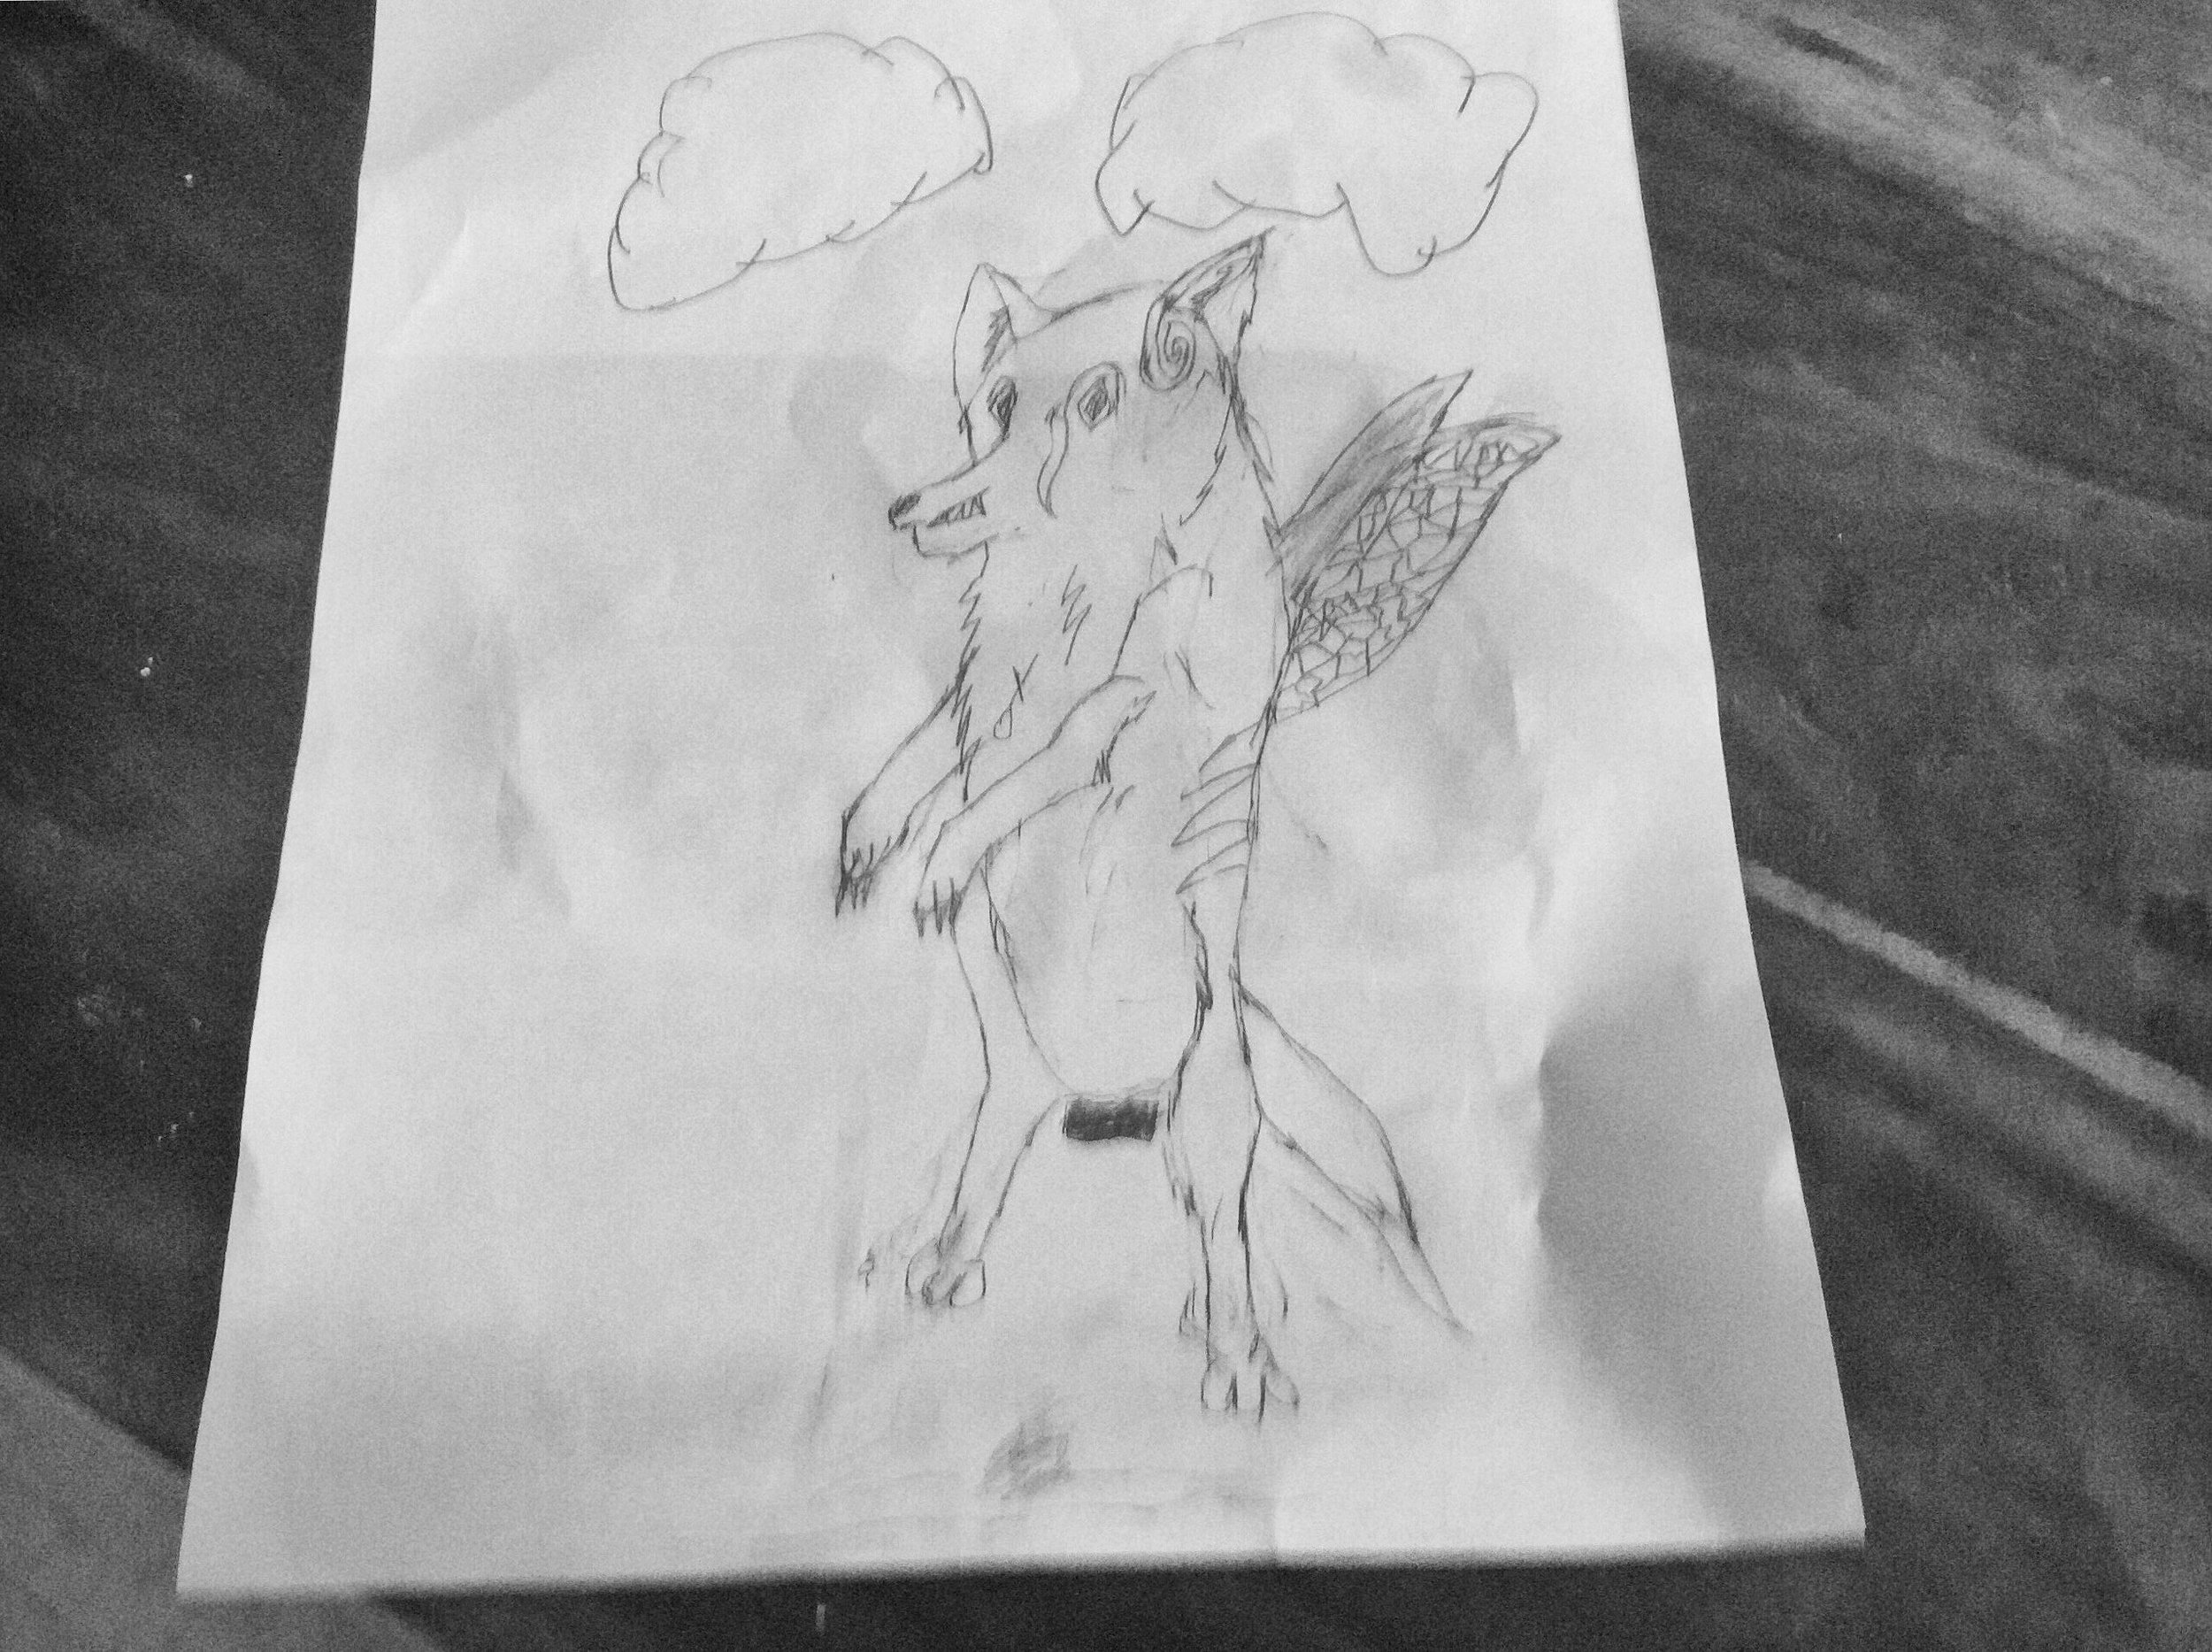 Kit as a Flying Direwolf   By Henry